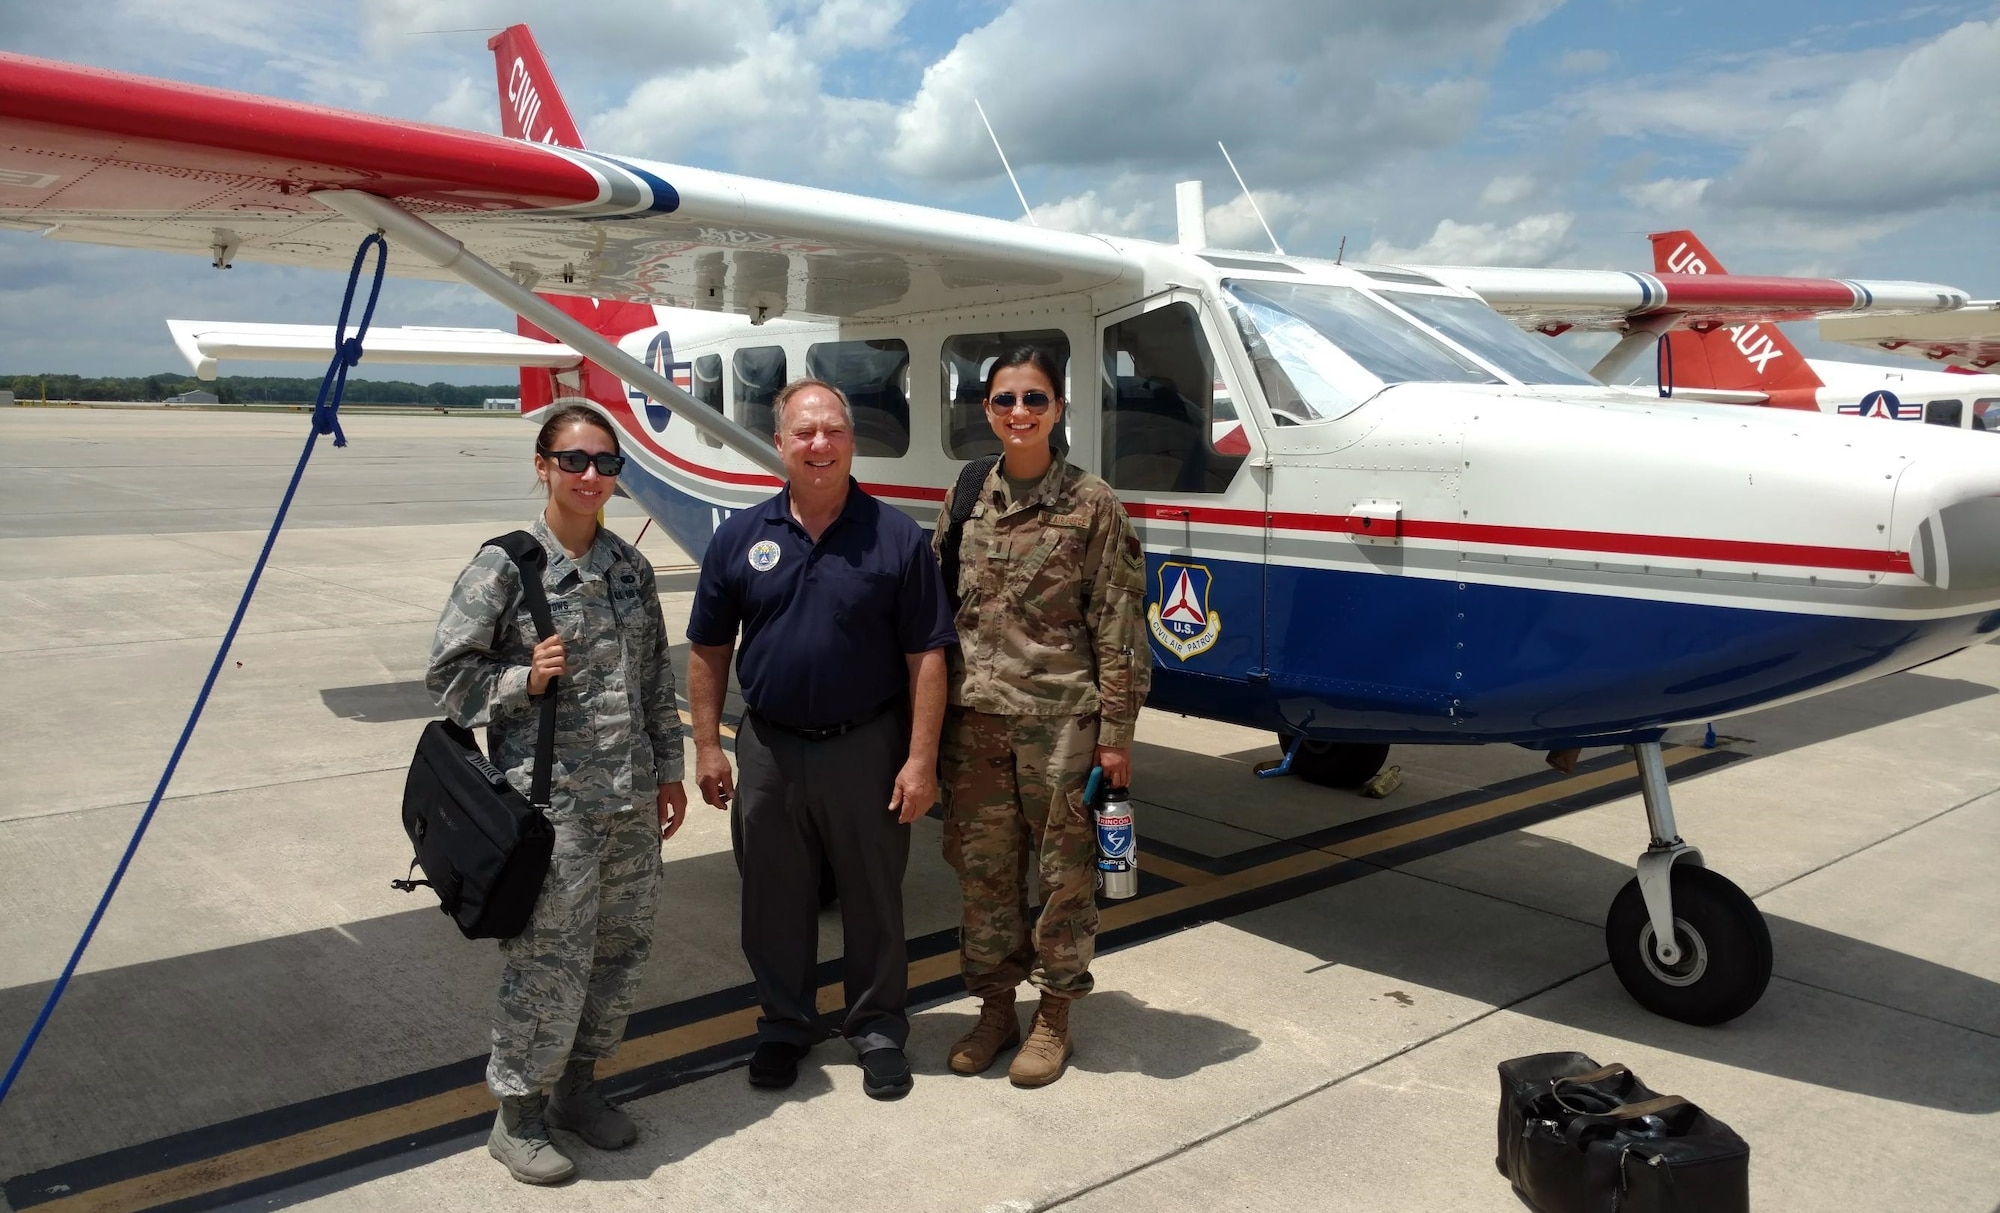 Lt. Col. Ken Curell (center) of CAP's Ohio Wing is flanked by two Pilot Prep Program students – Air Force 1st Lts. Sherry Meadows, assigned to Aviano Air Base, Italy, and Makenna Elliott, assigned to Offutt Air Force Base, Neb. (Civil Air Patrol photo by Ron Olienyk)